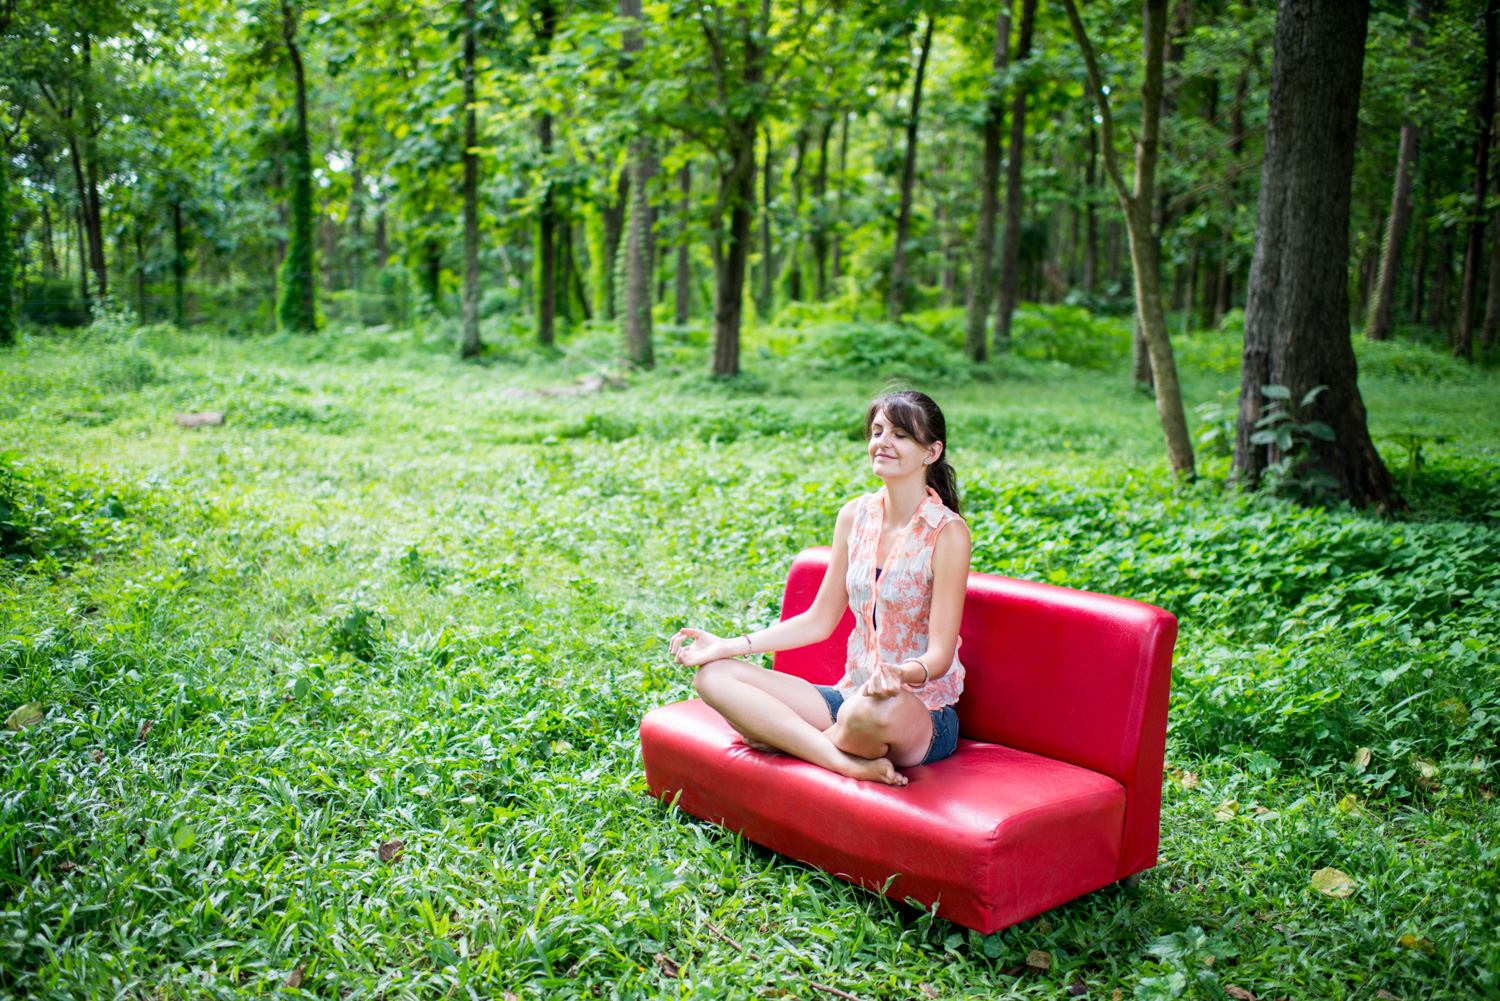 DPS Ultimate Guide to Photographing People for Shy Photographers Woman Meditating on a red sofa